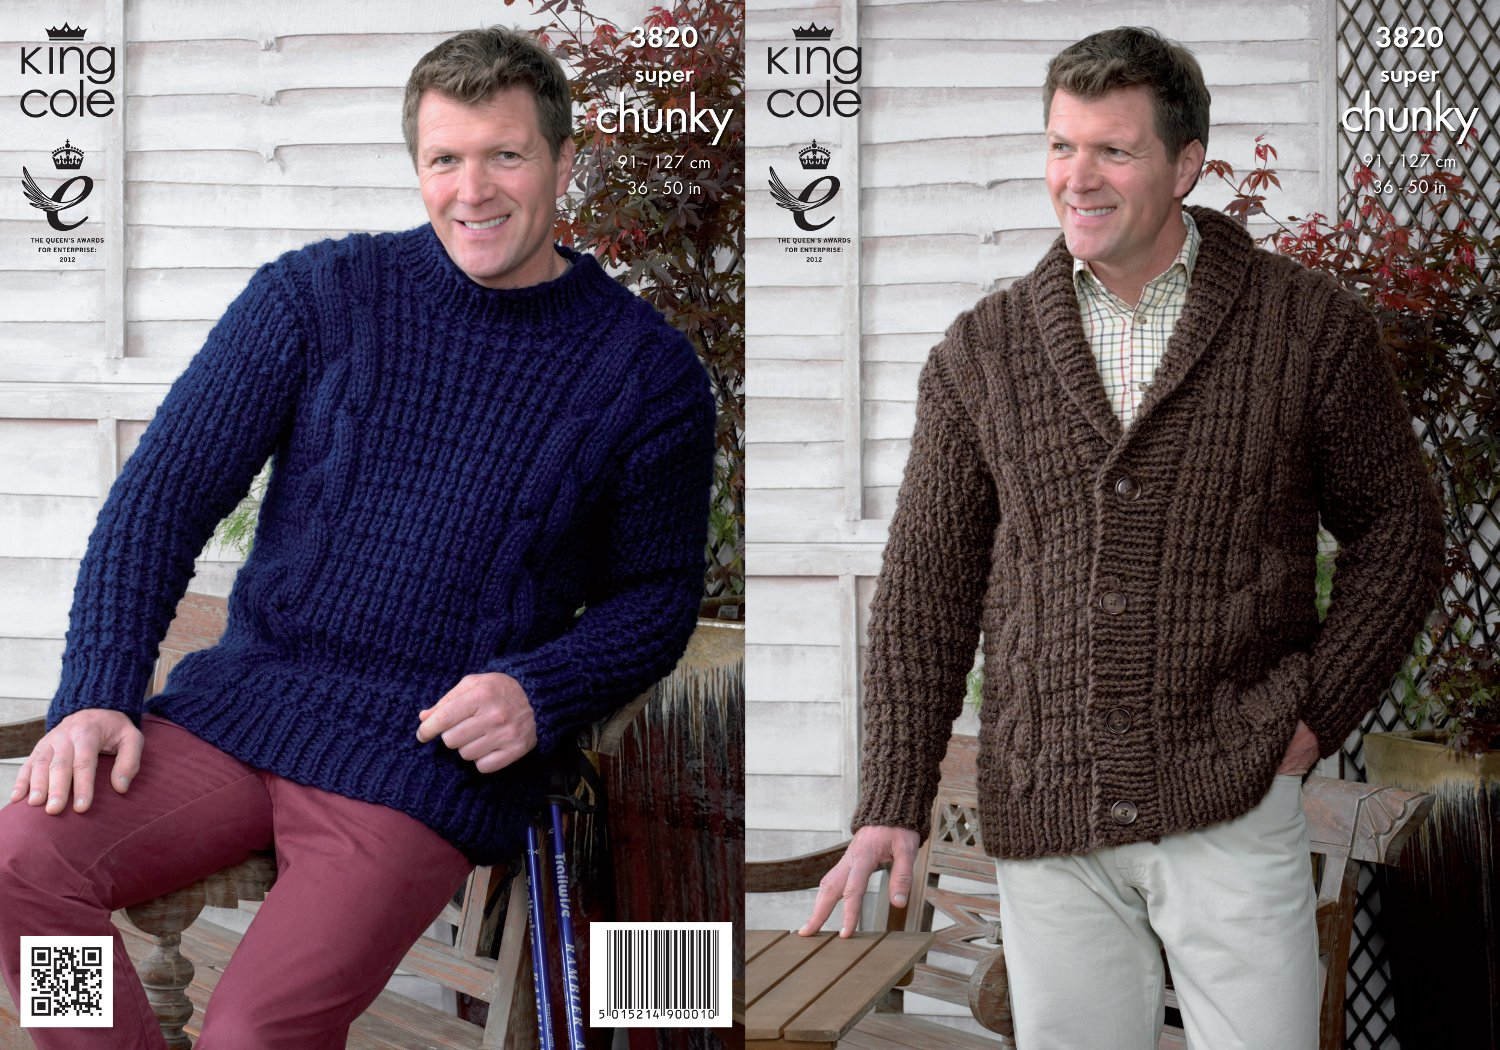 King Cole Mens Super Chunky Knitting Pattern Cable Knit Jacket / Cardigan & Sweater 3820